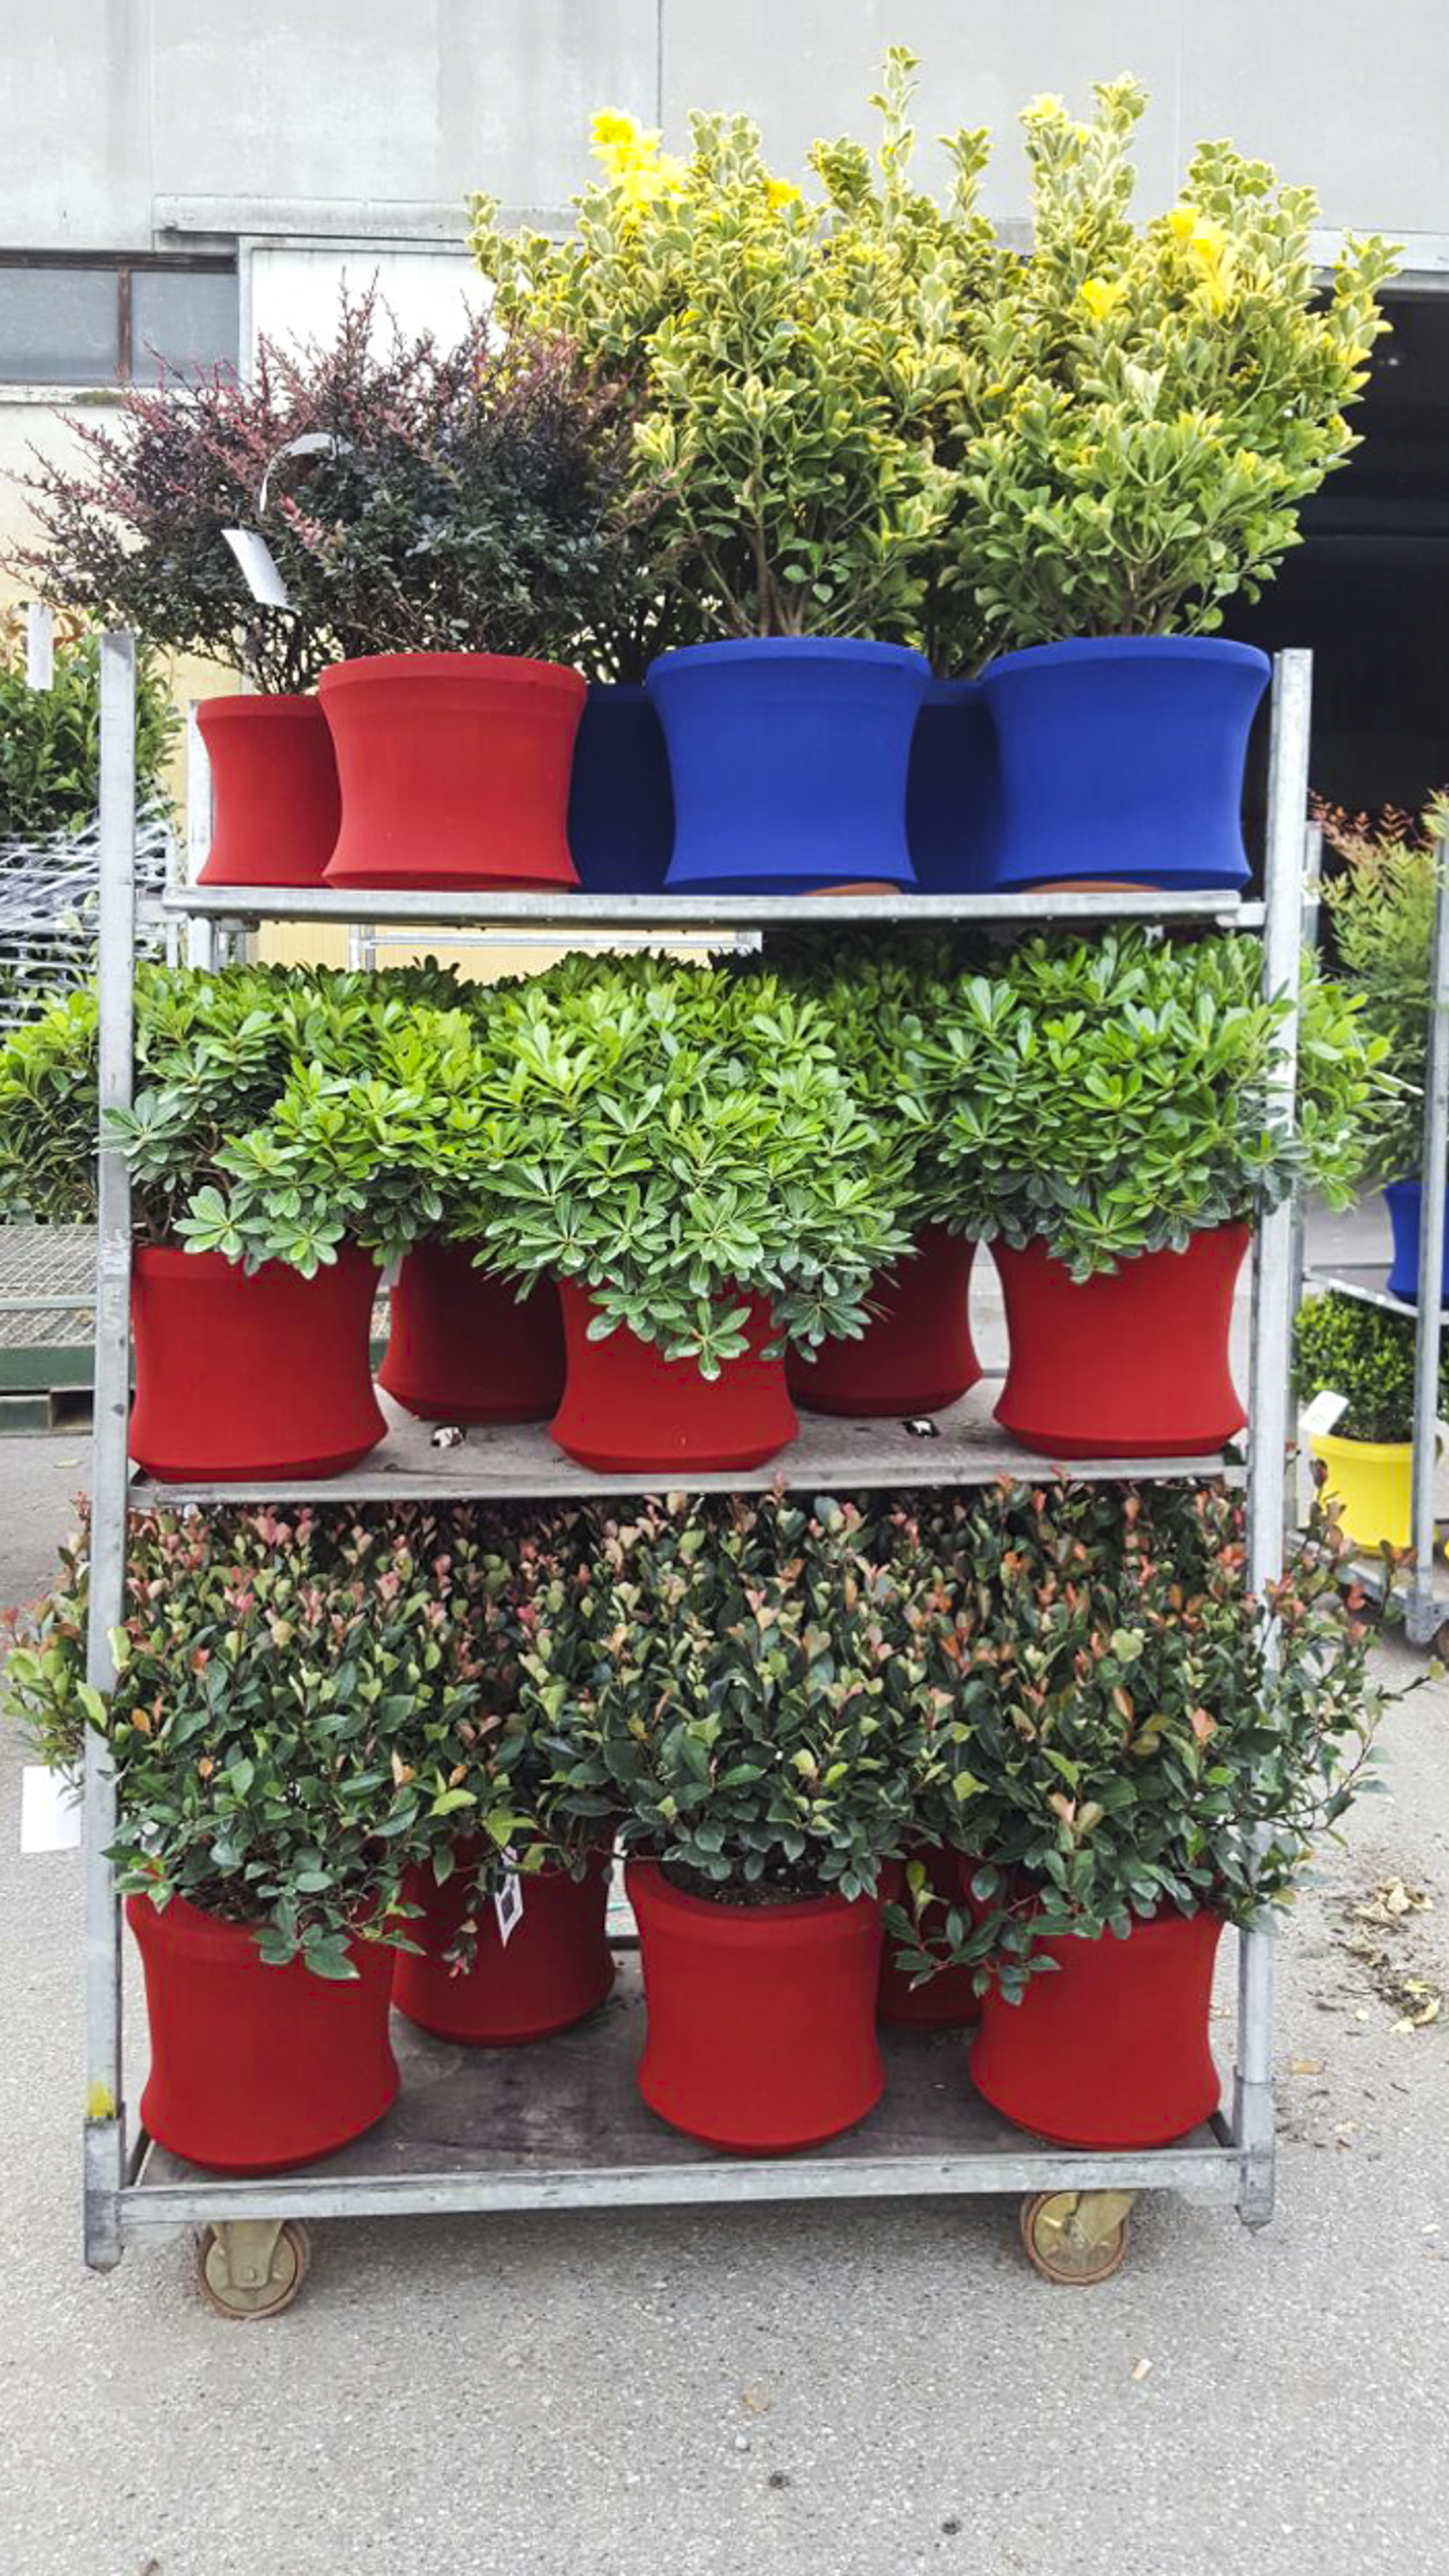 Carrello cc Fashion Plant (3)